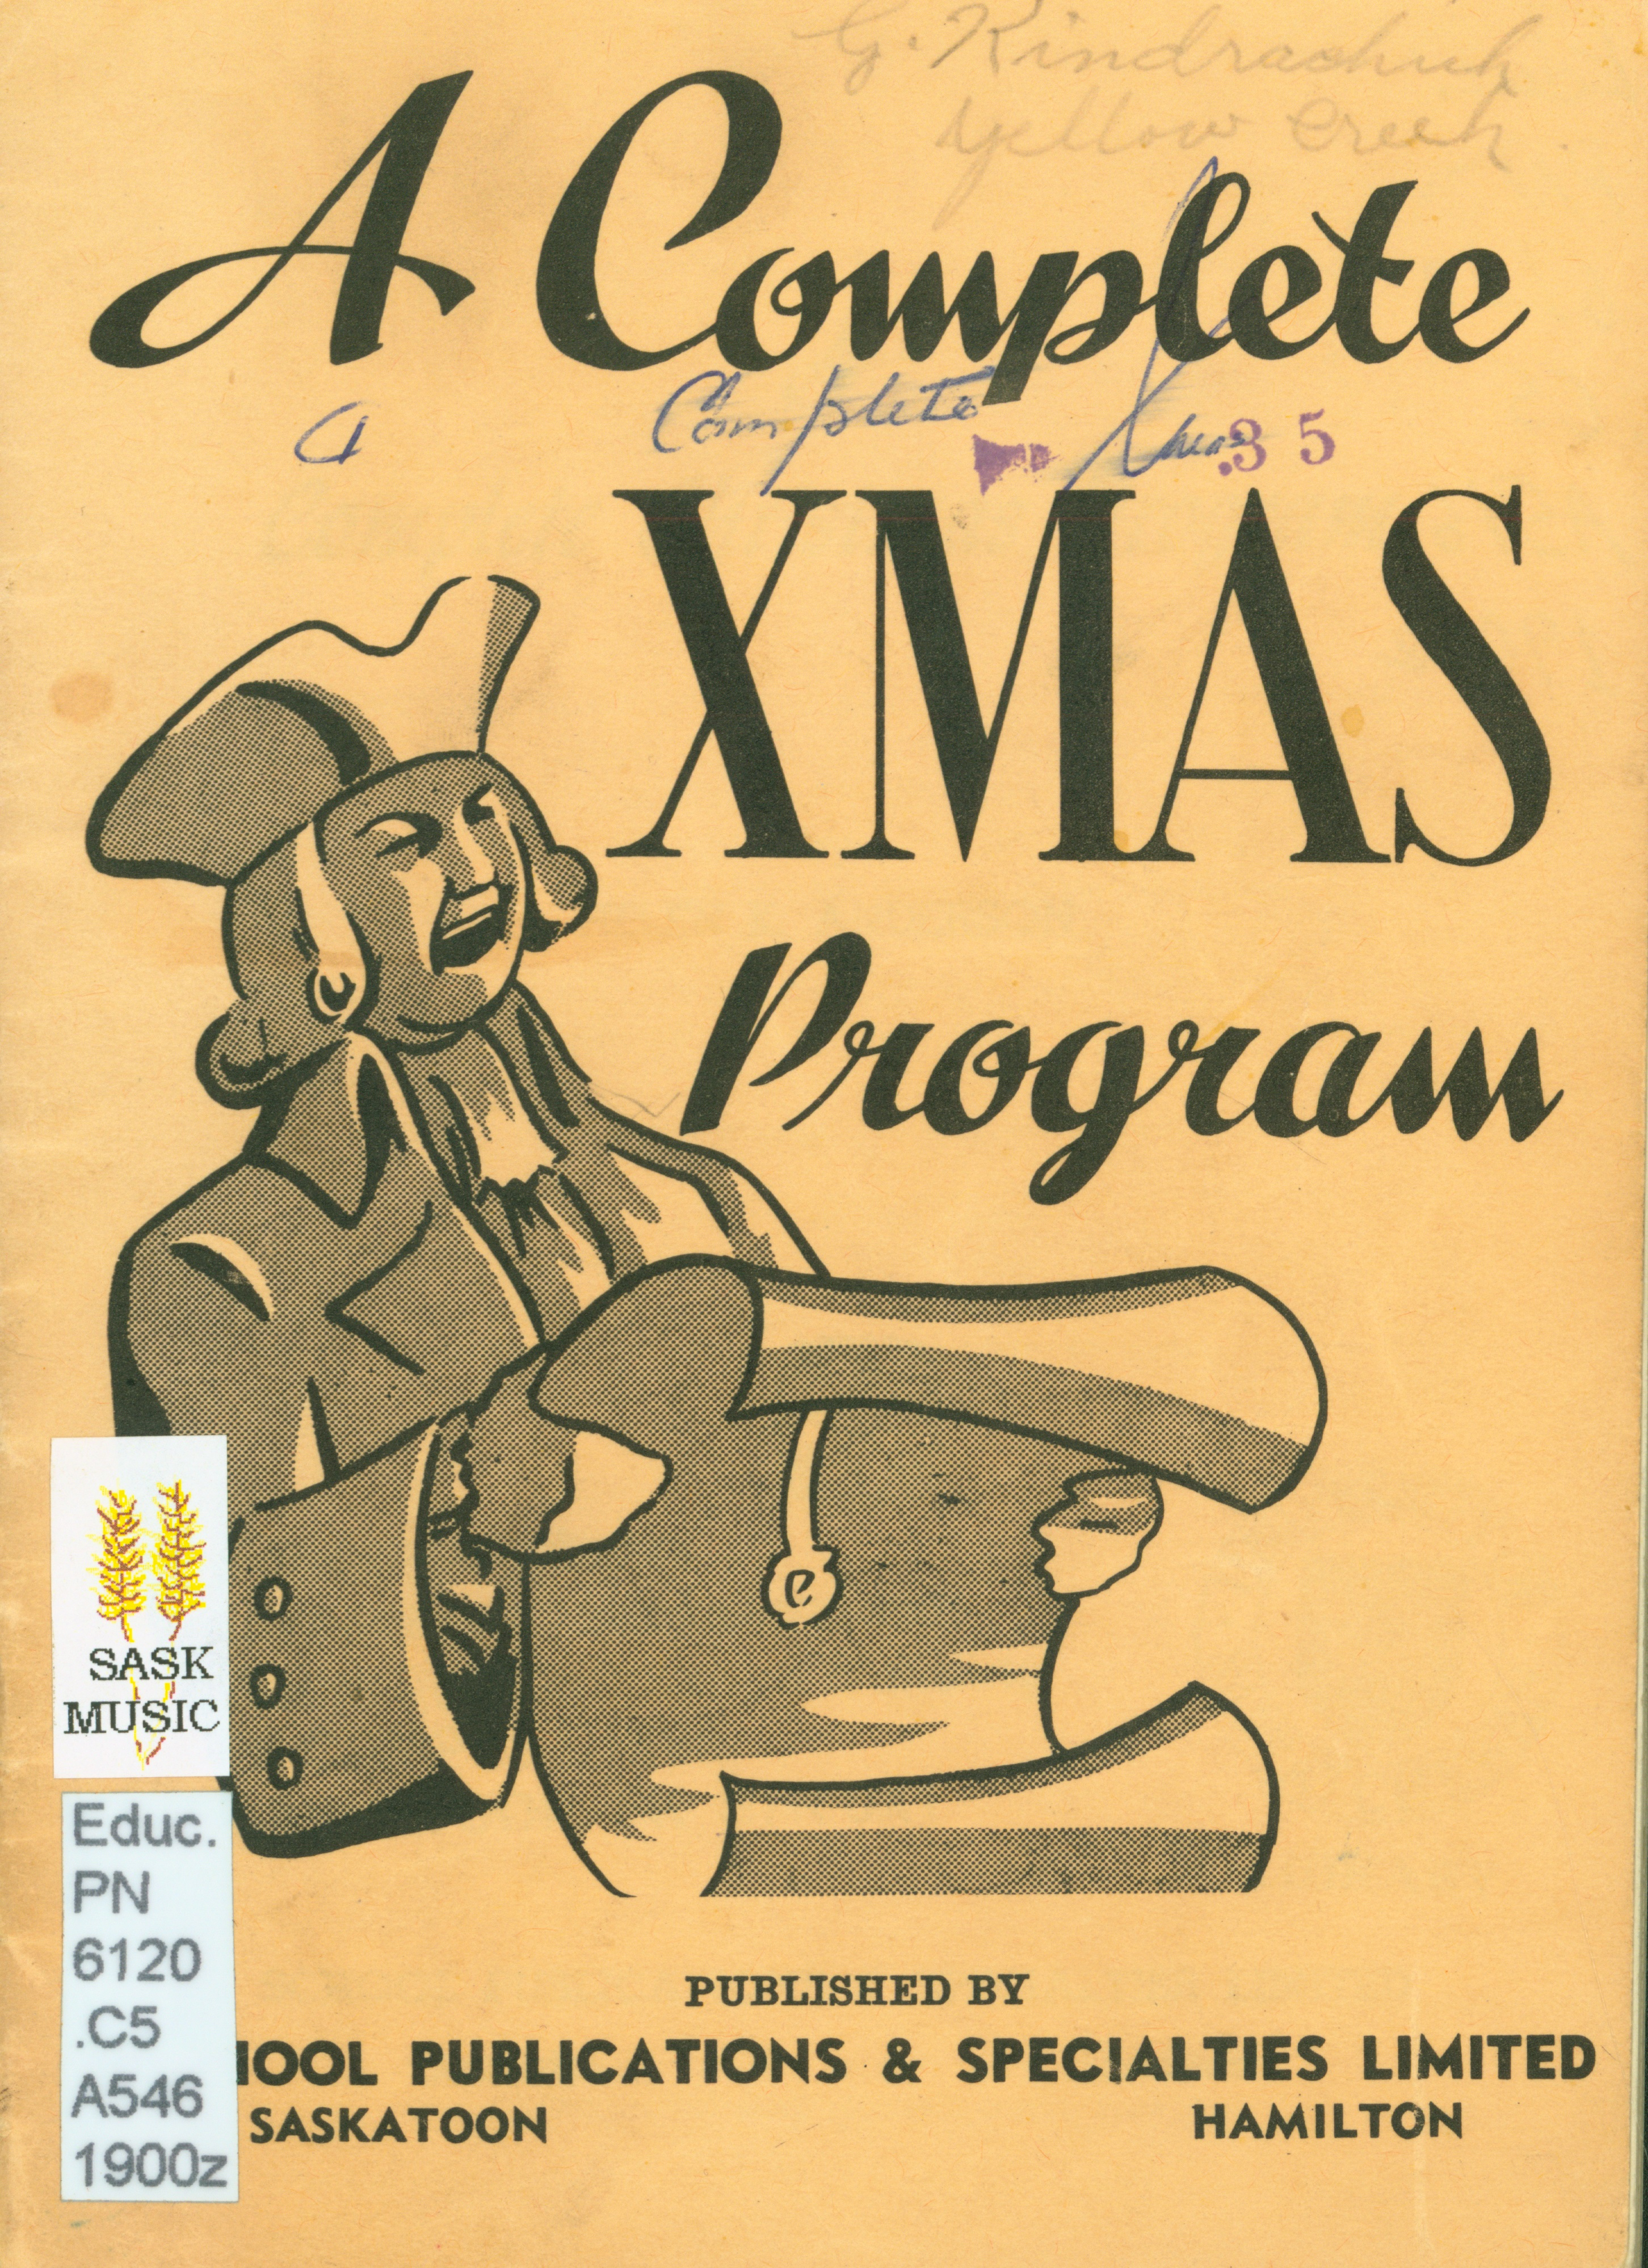 A complete Christmas program